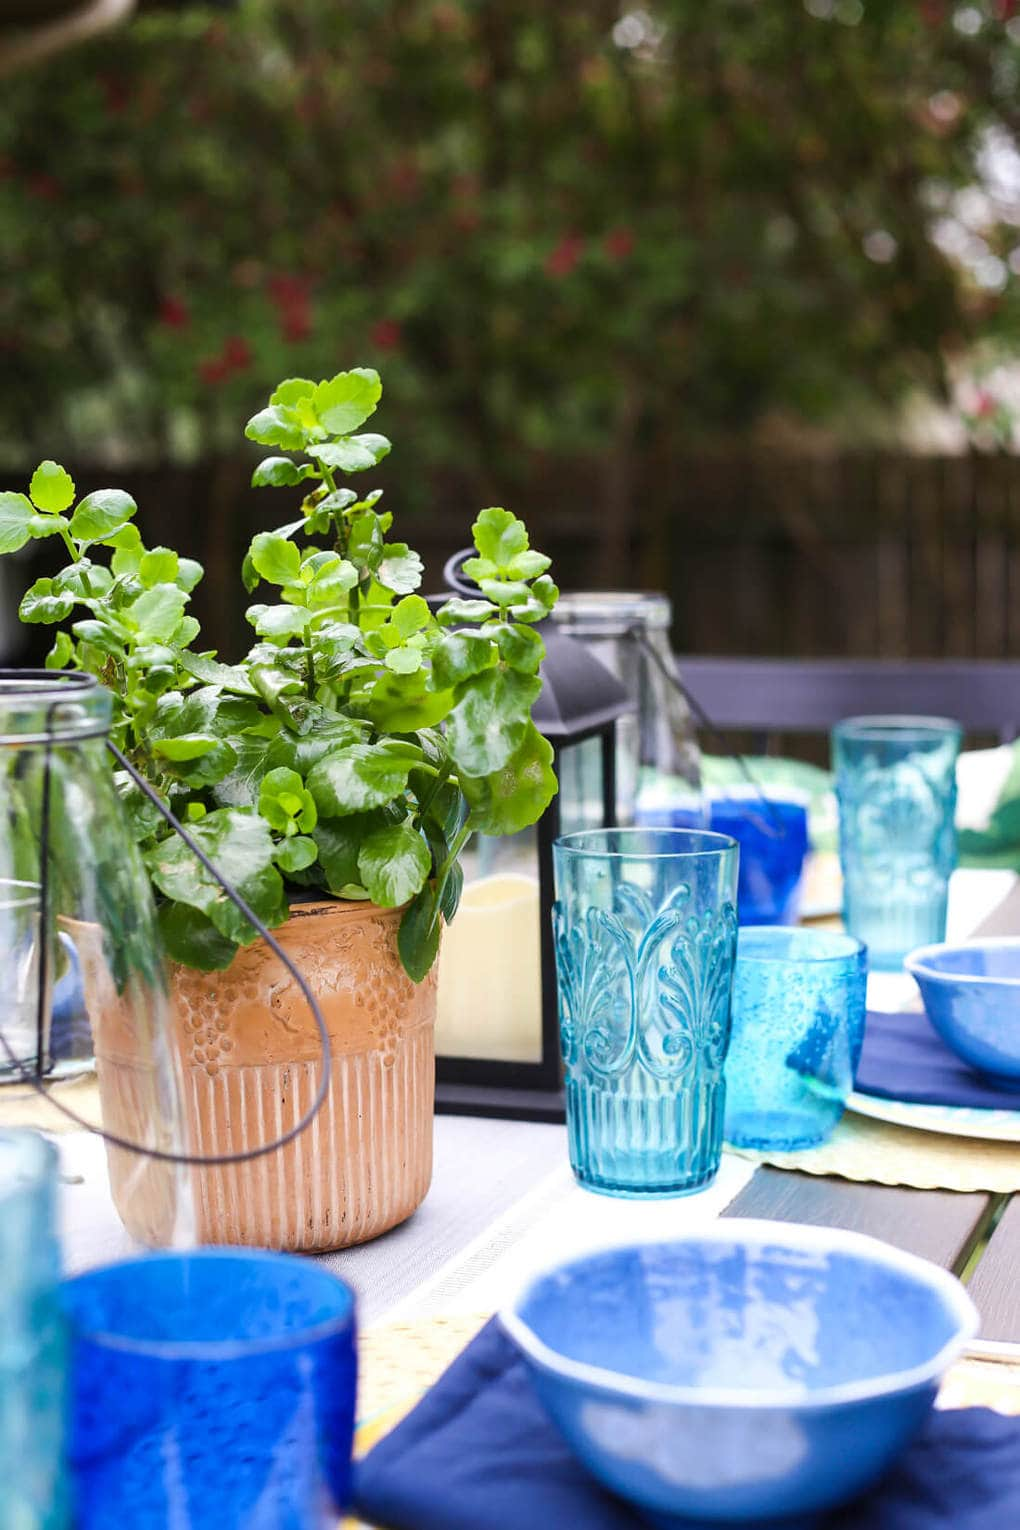 Quick tips, tricks, and ideas for a summer tablescape from 7 different blogs. Great inspiration for a beautiful table setting for your home this summer.